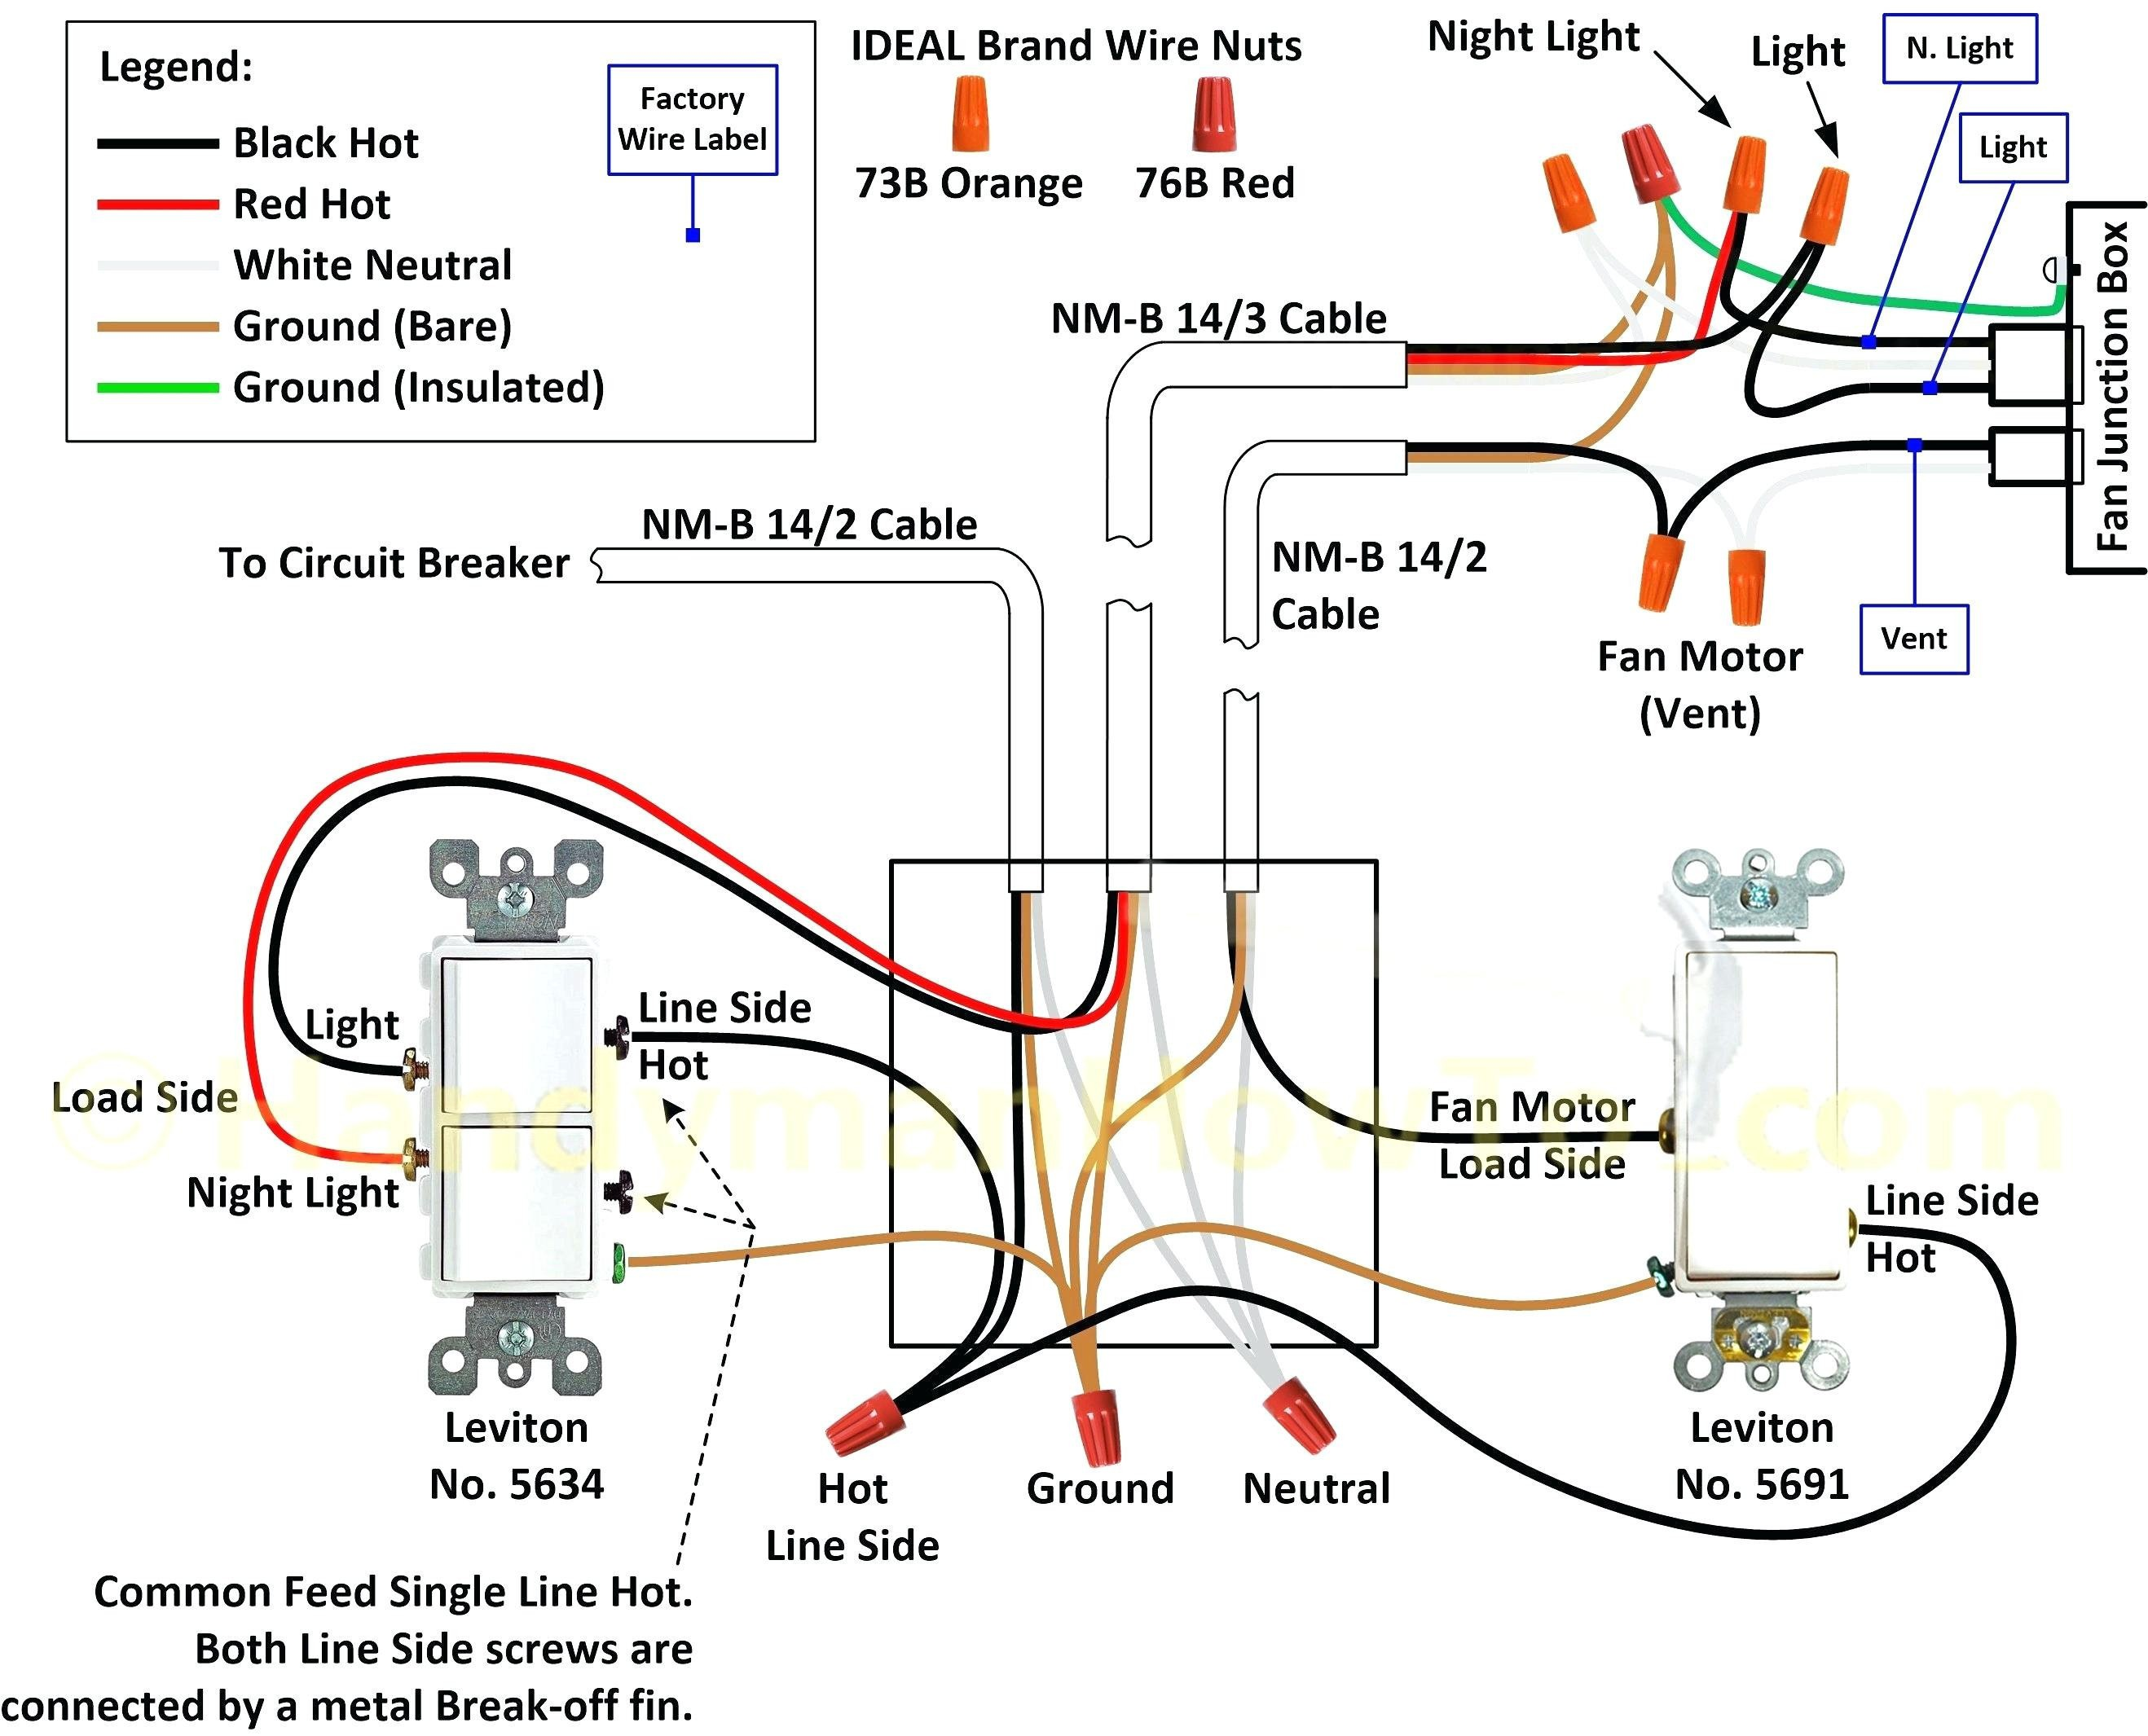 yanmar 3tnv88 wiring diagram wiring diagram online yanmar engine wiring diagram wiring diagram libraries starter relay wiring diagram yanmar 3tnv88 wiring diagram